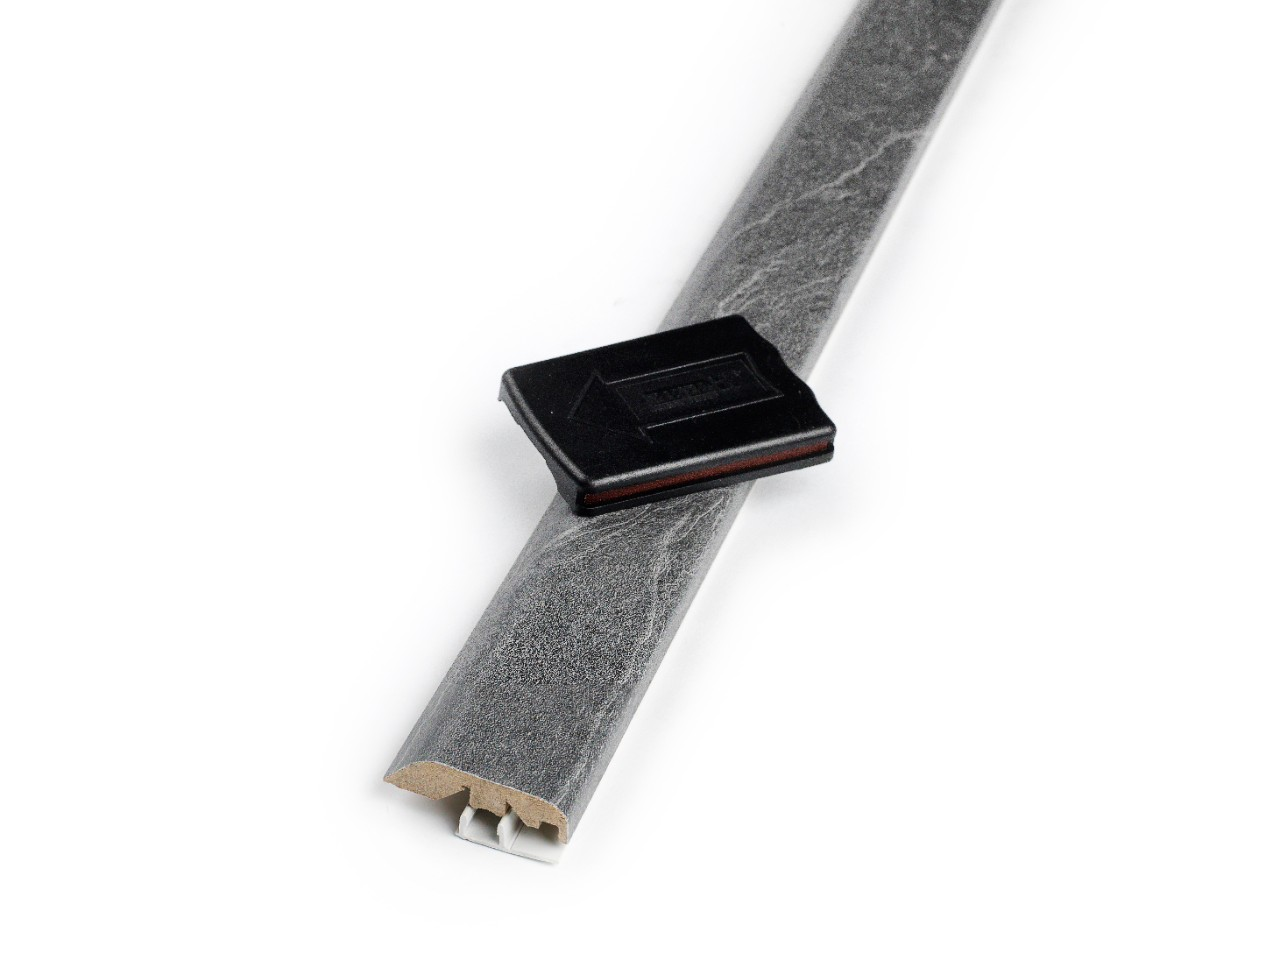 PGINCP Laminate Accessories Medium Grey Slate PGINCP01779